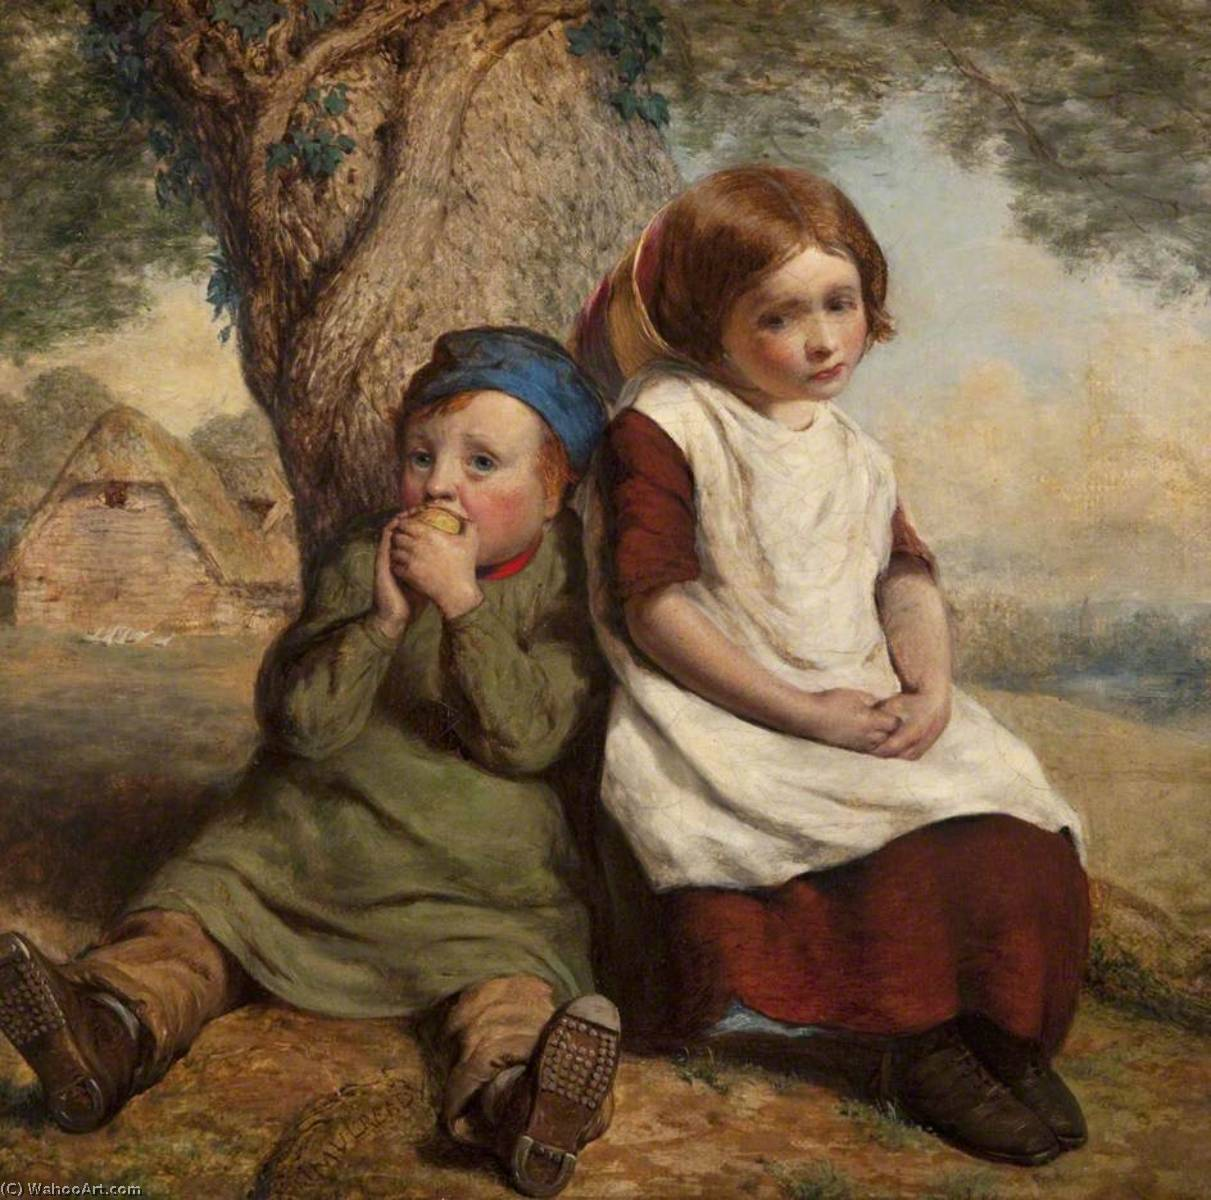 垄断者, 1843 通过 William Mulready The Younger (1786-1863, Ireland) | 幀畫冊專輯 | WahooArt.com